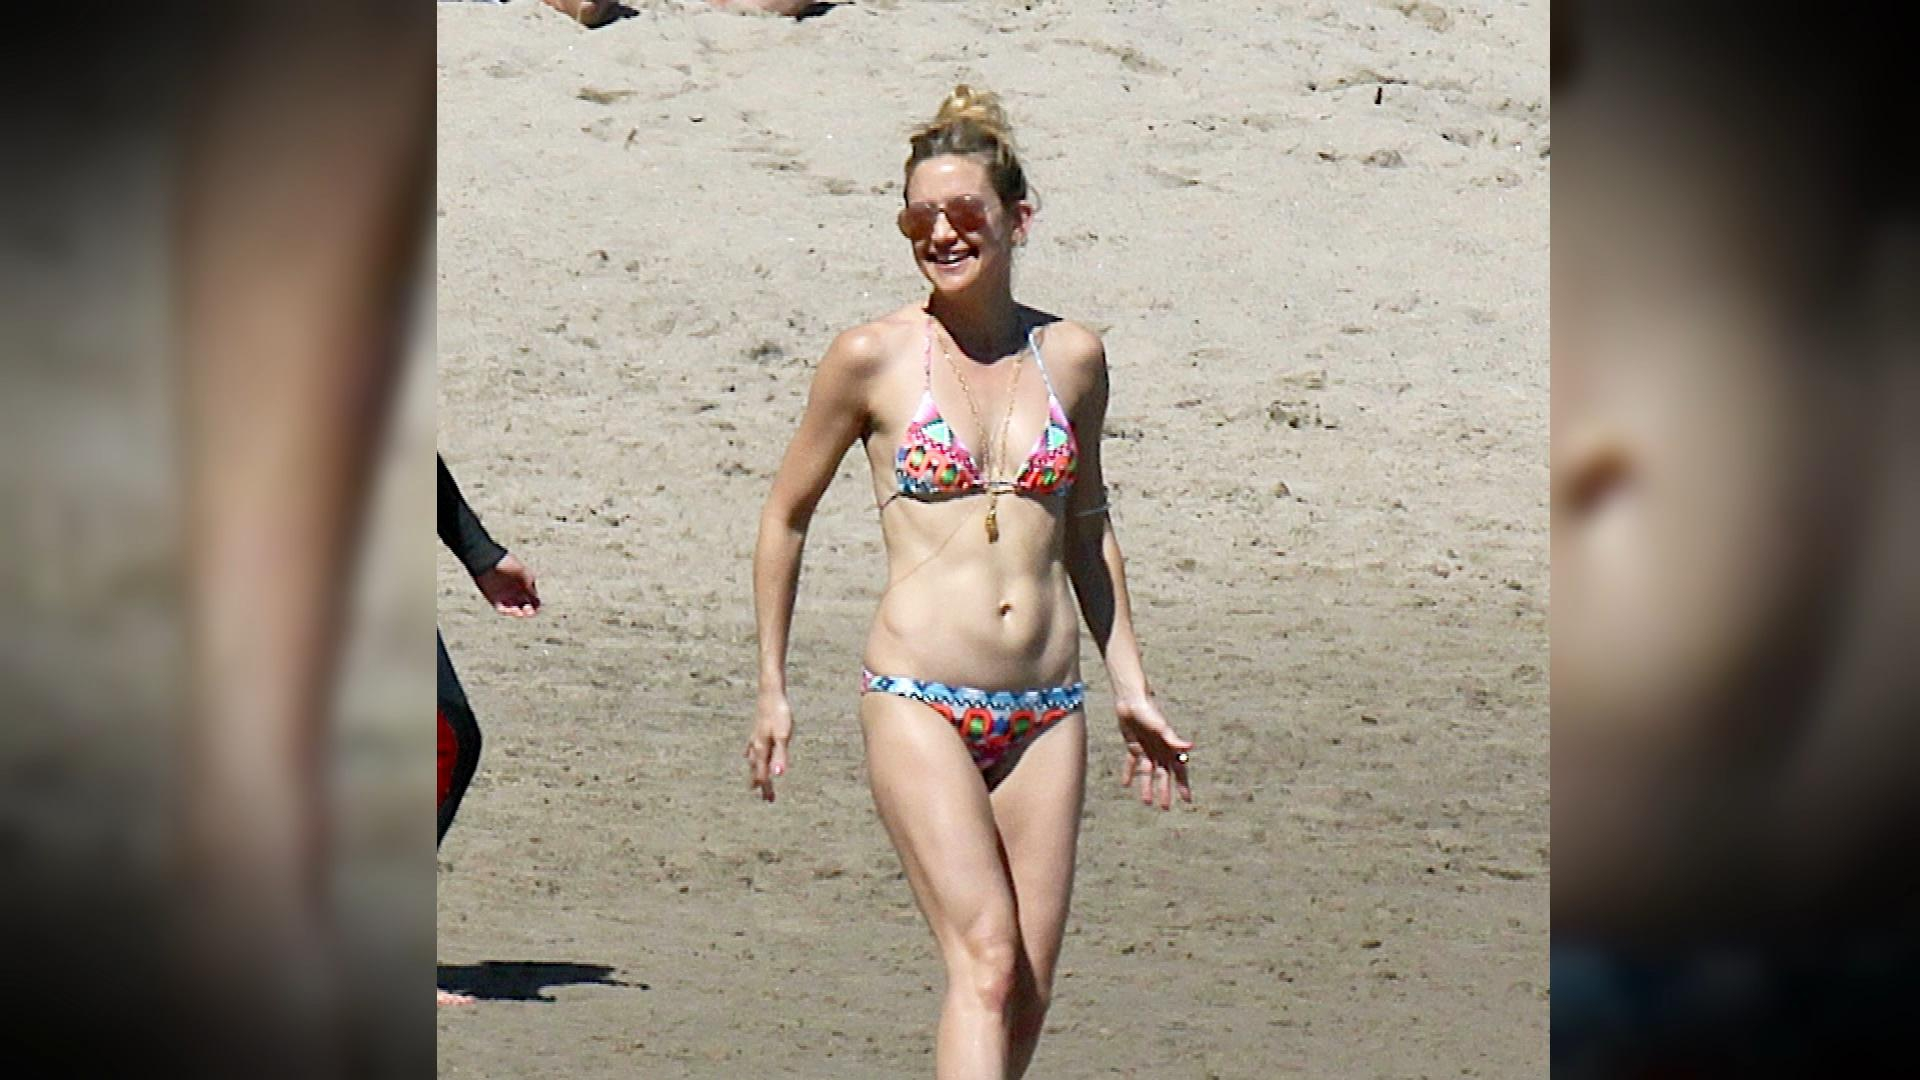 Hot Celeb Moms With Killer Beach Bodies